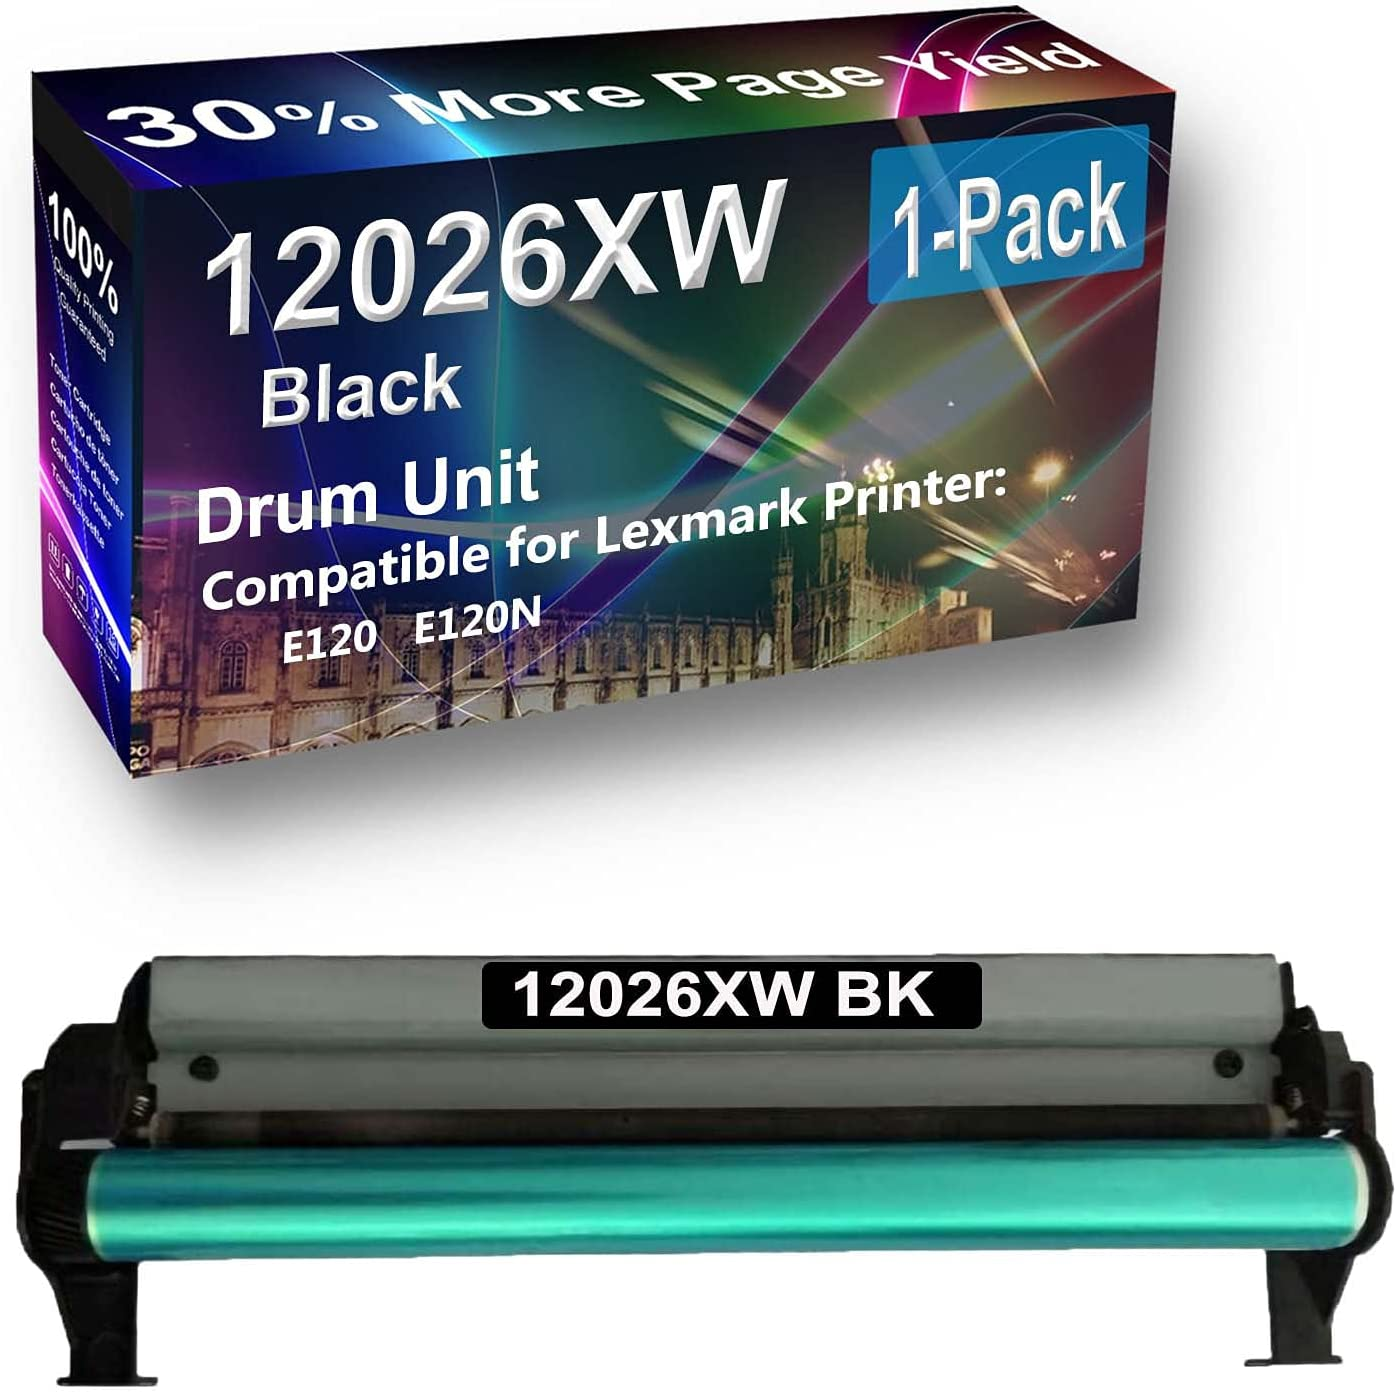 1-Pack (Black) Compatible E120 E120N Printer Drum Unit Replacement for Lexmark 12026XW Drum Kit